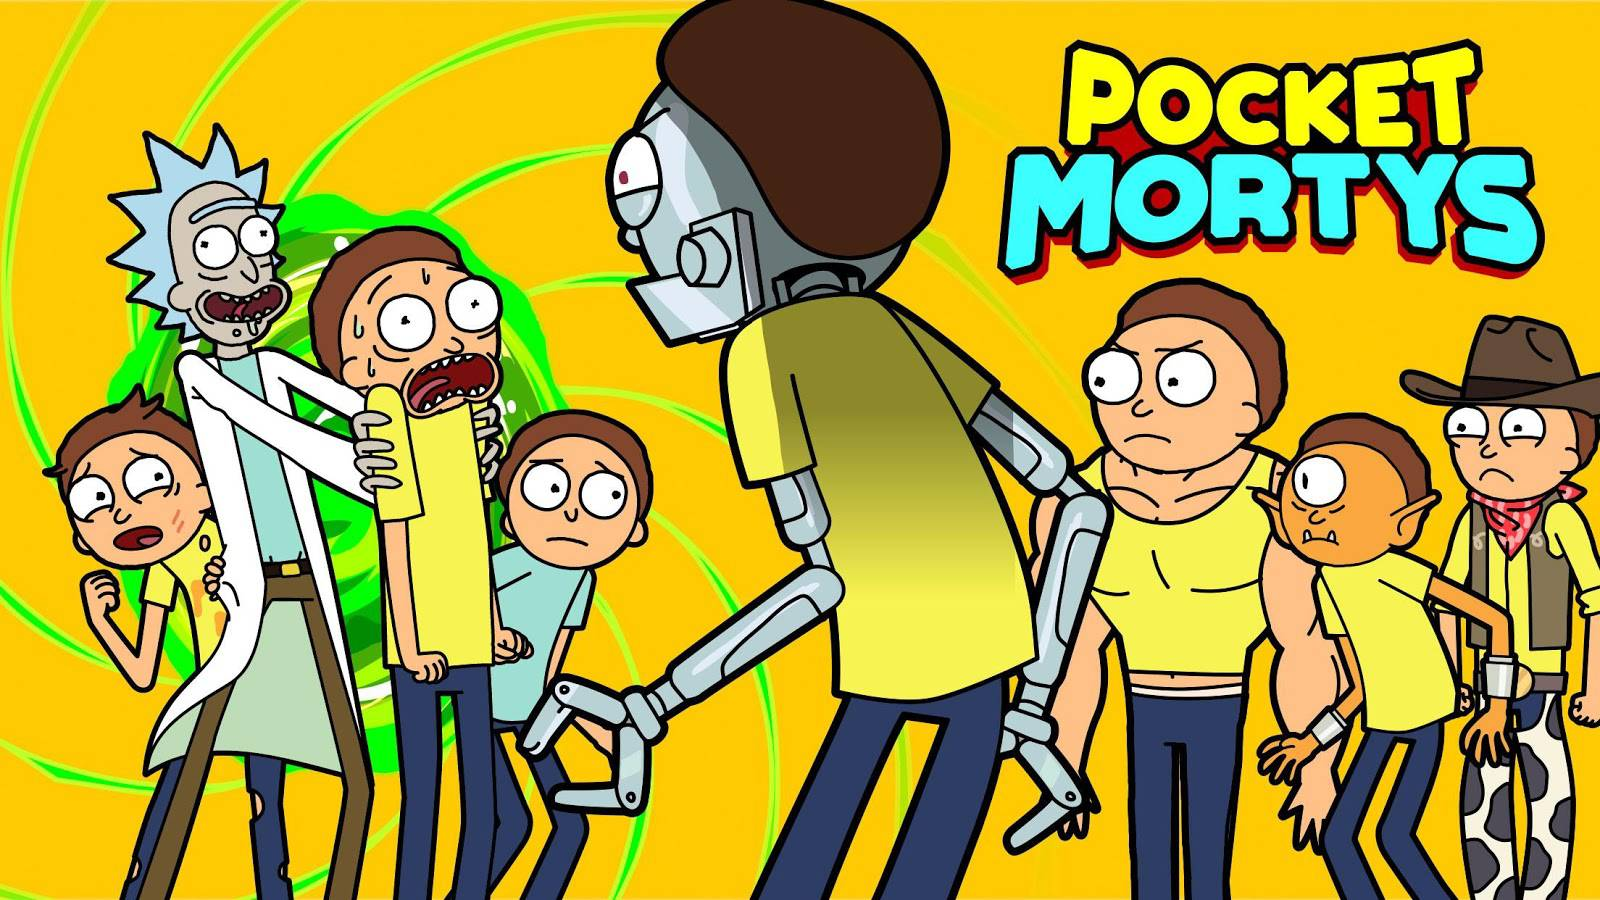 Pocket Mortys official image_1